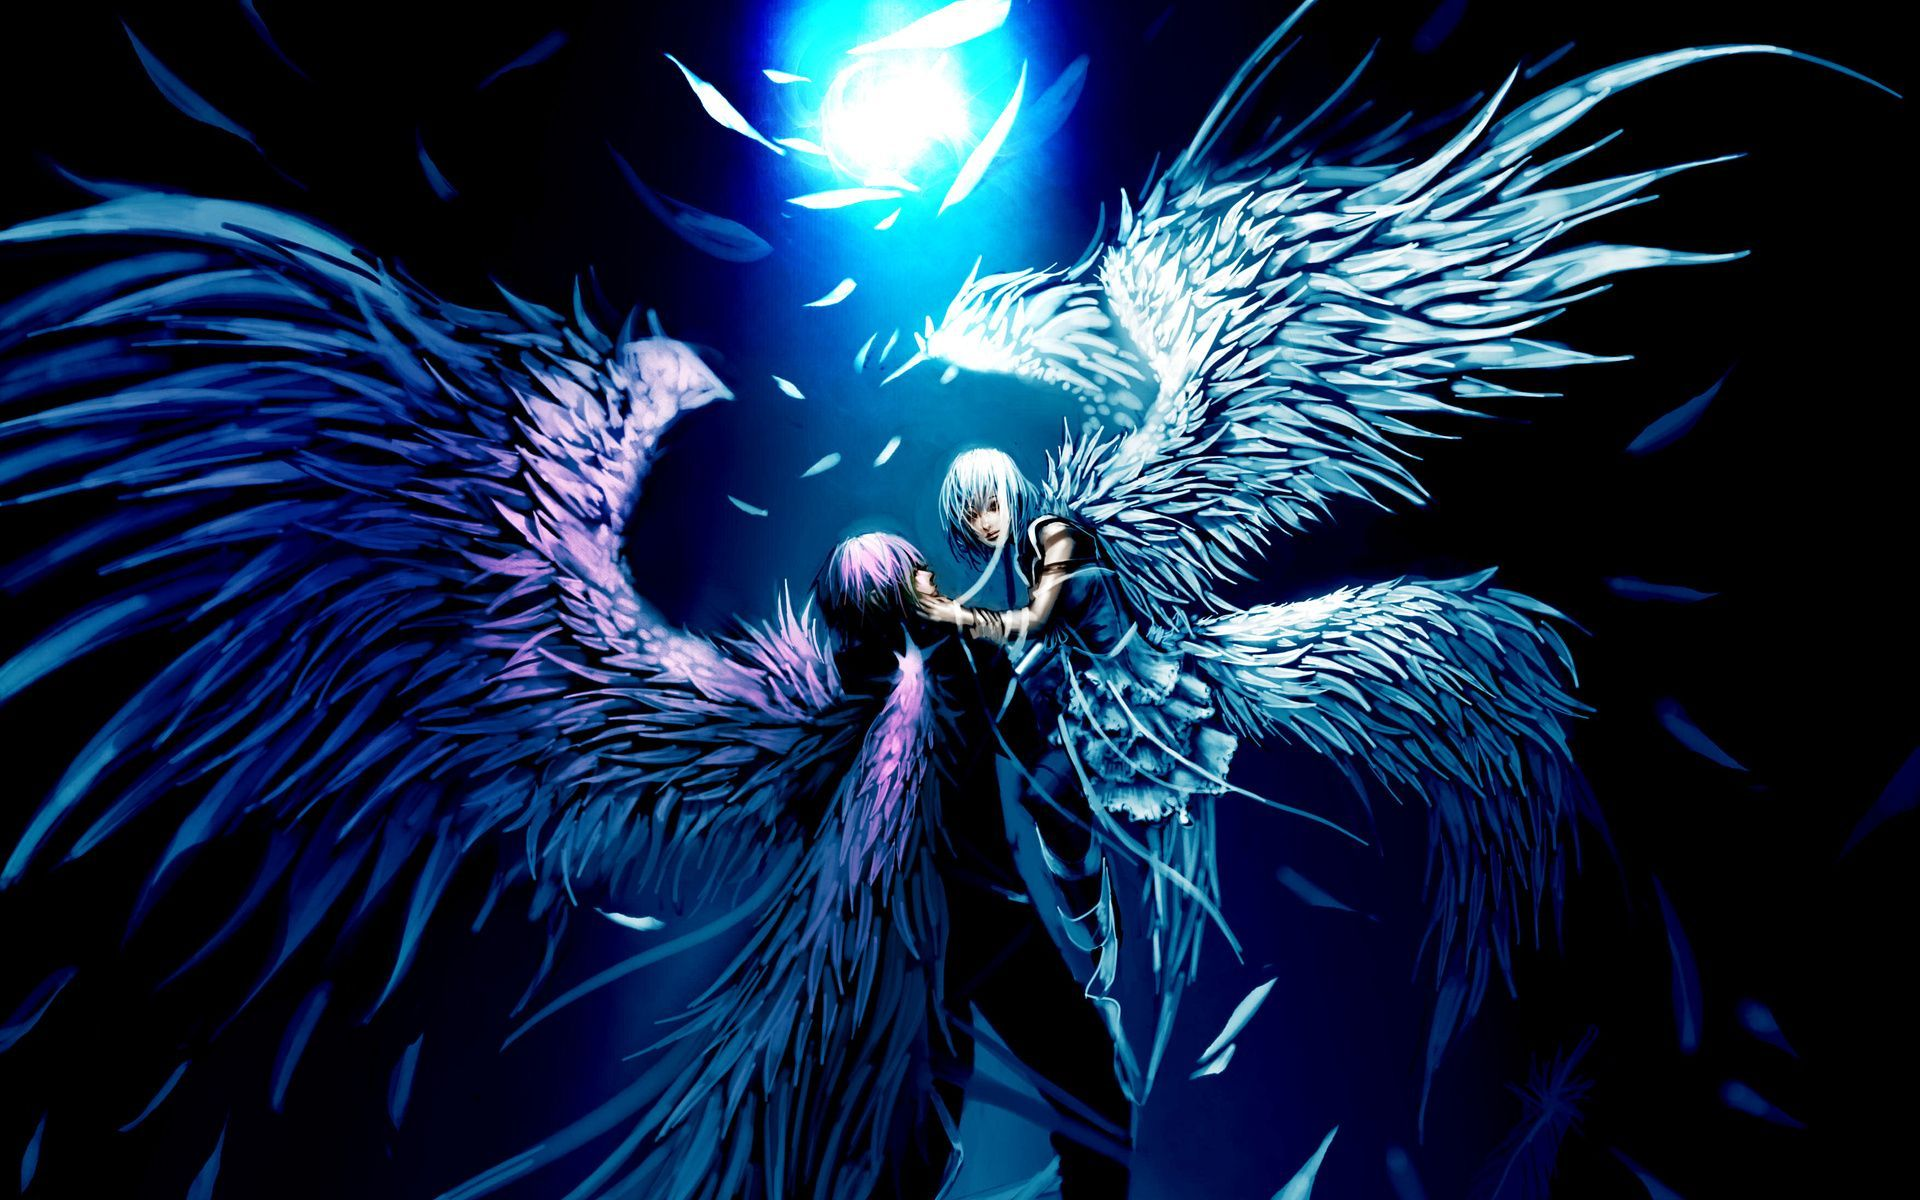 Anime Angels Wallpapers Top Free Anime Angels Backgrounds